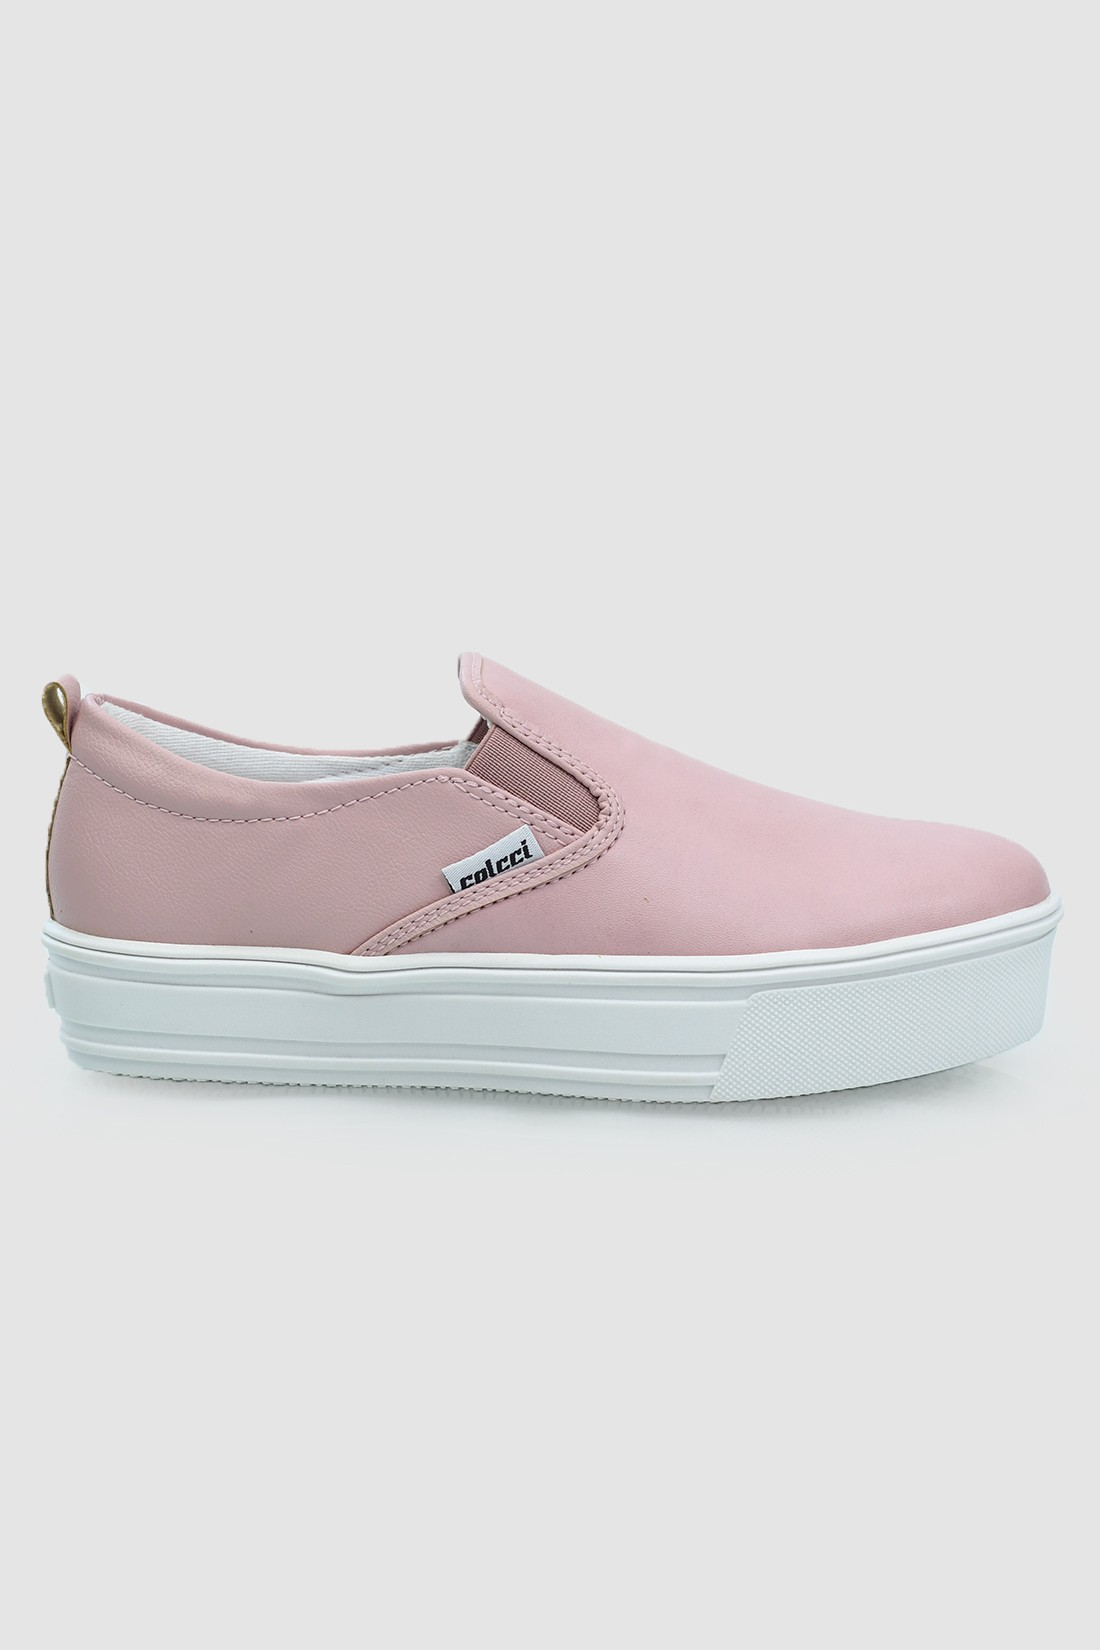 Slip On Colcci Leticia